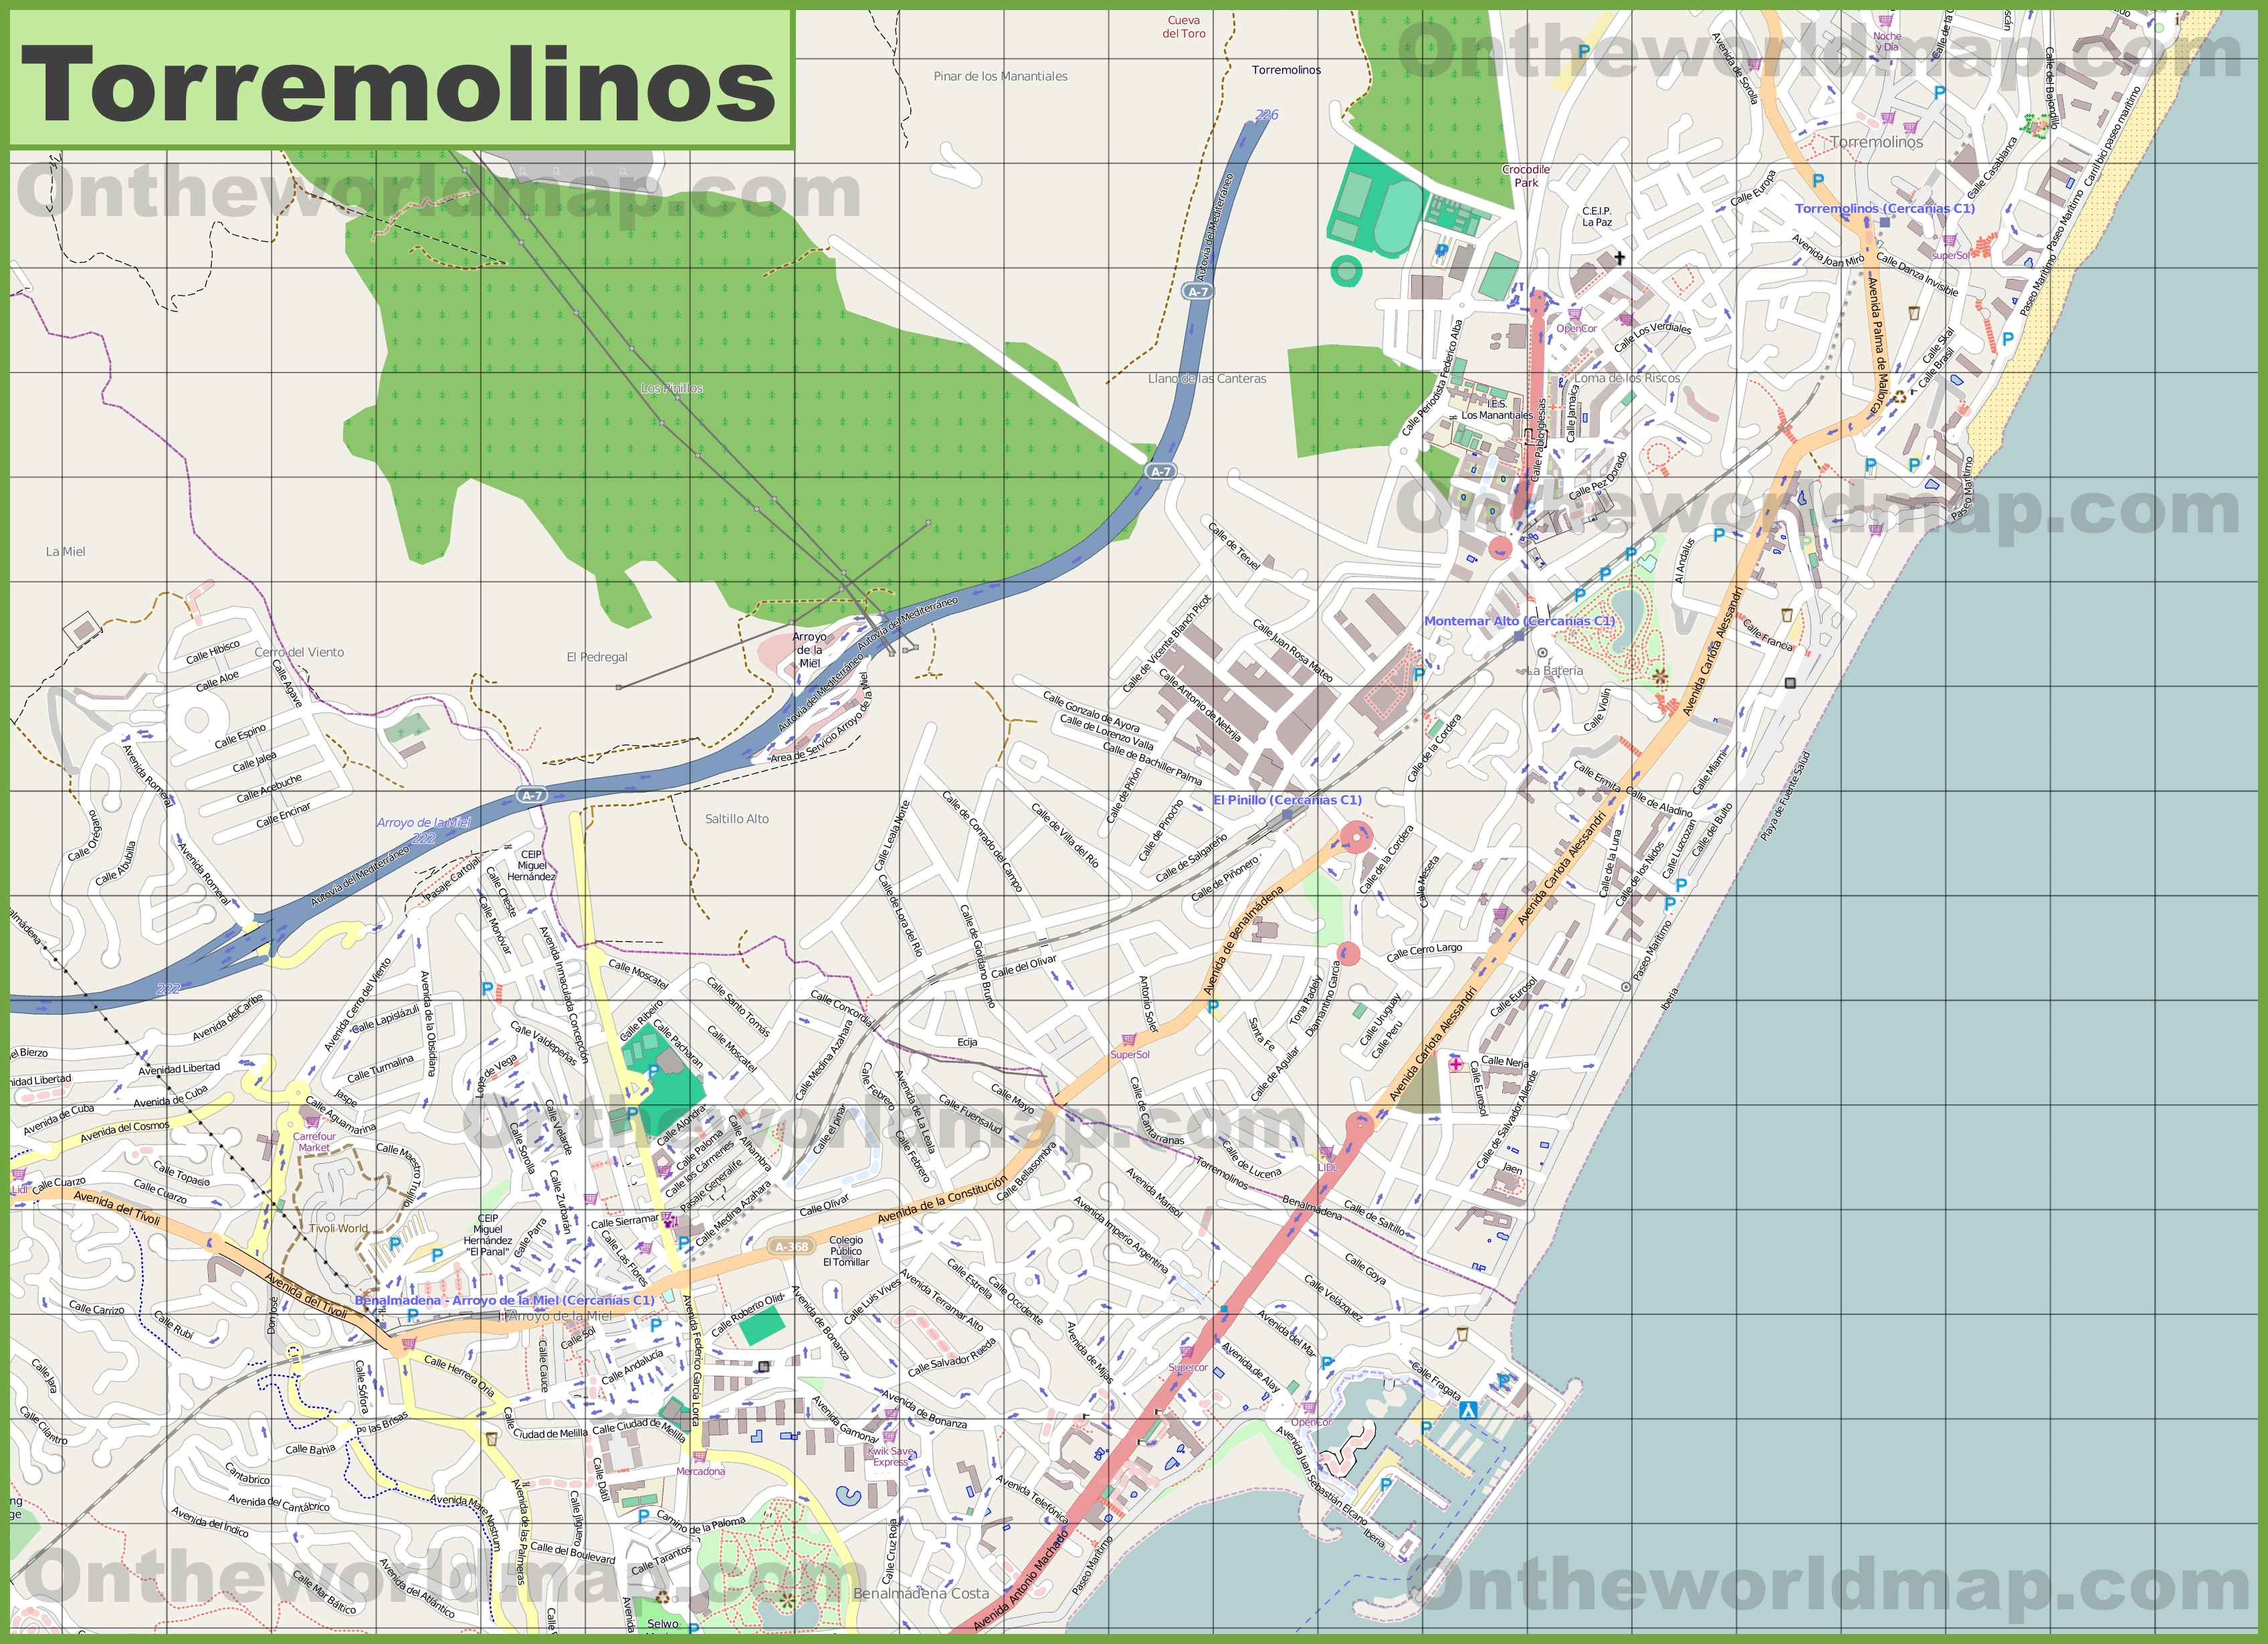 Cartina Torremolinos Spagna.Large Detailed Map Of Torremolinos